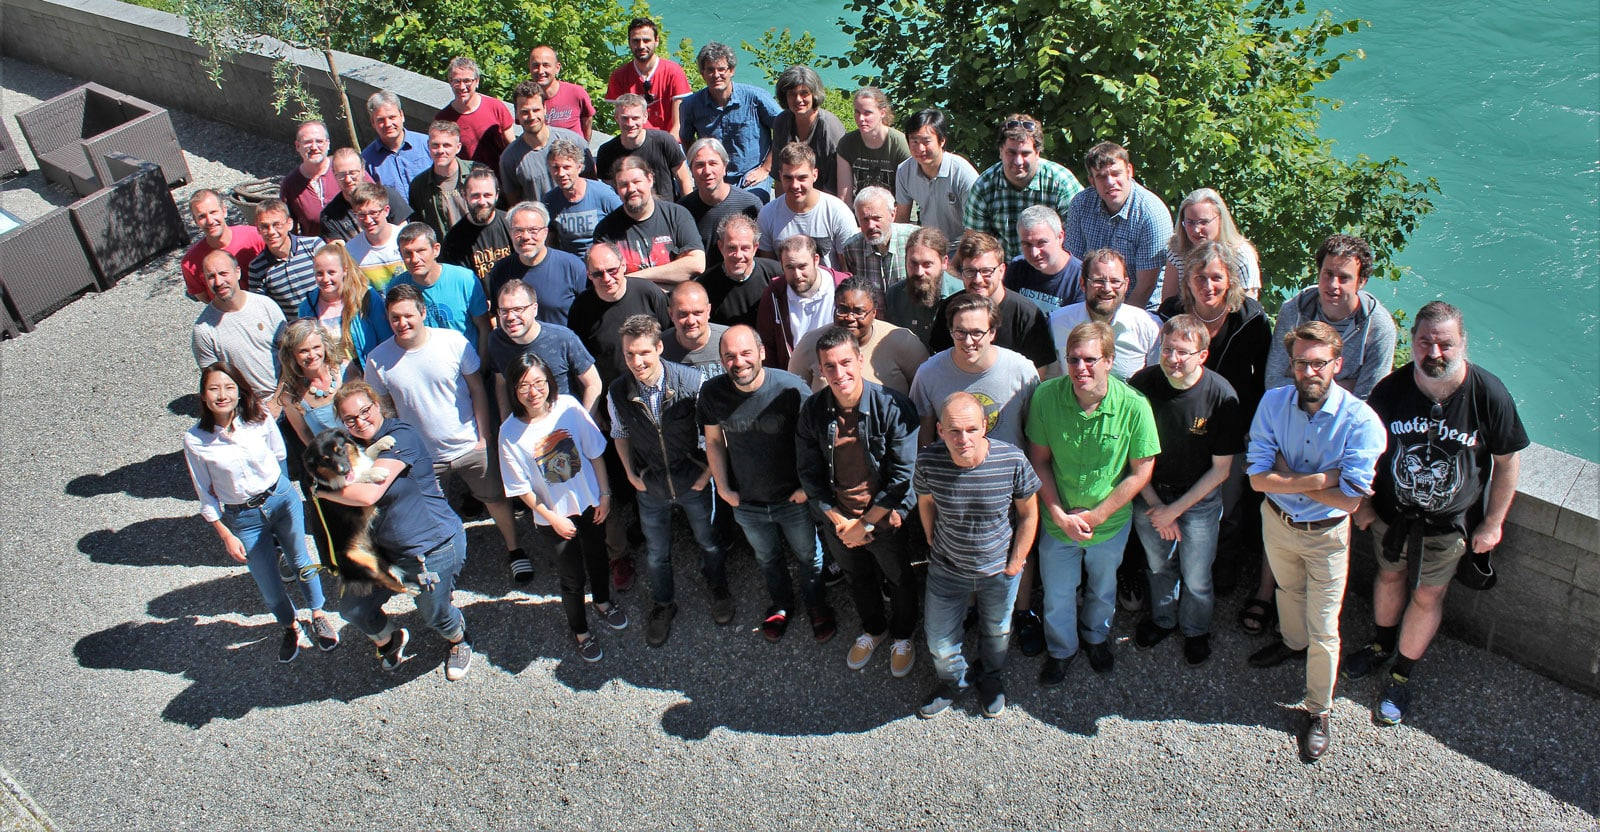 Group photo of Tofwerk employees